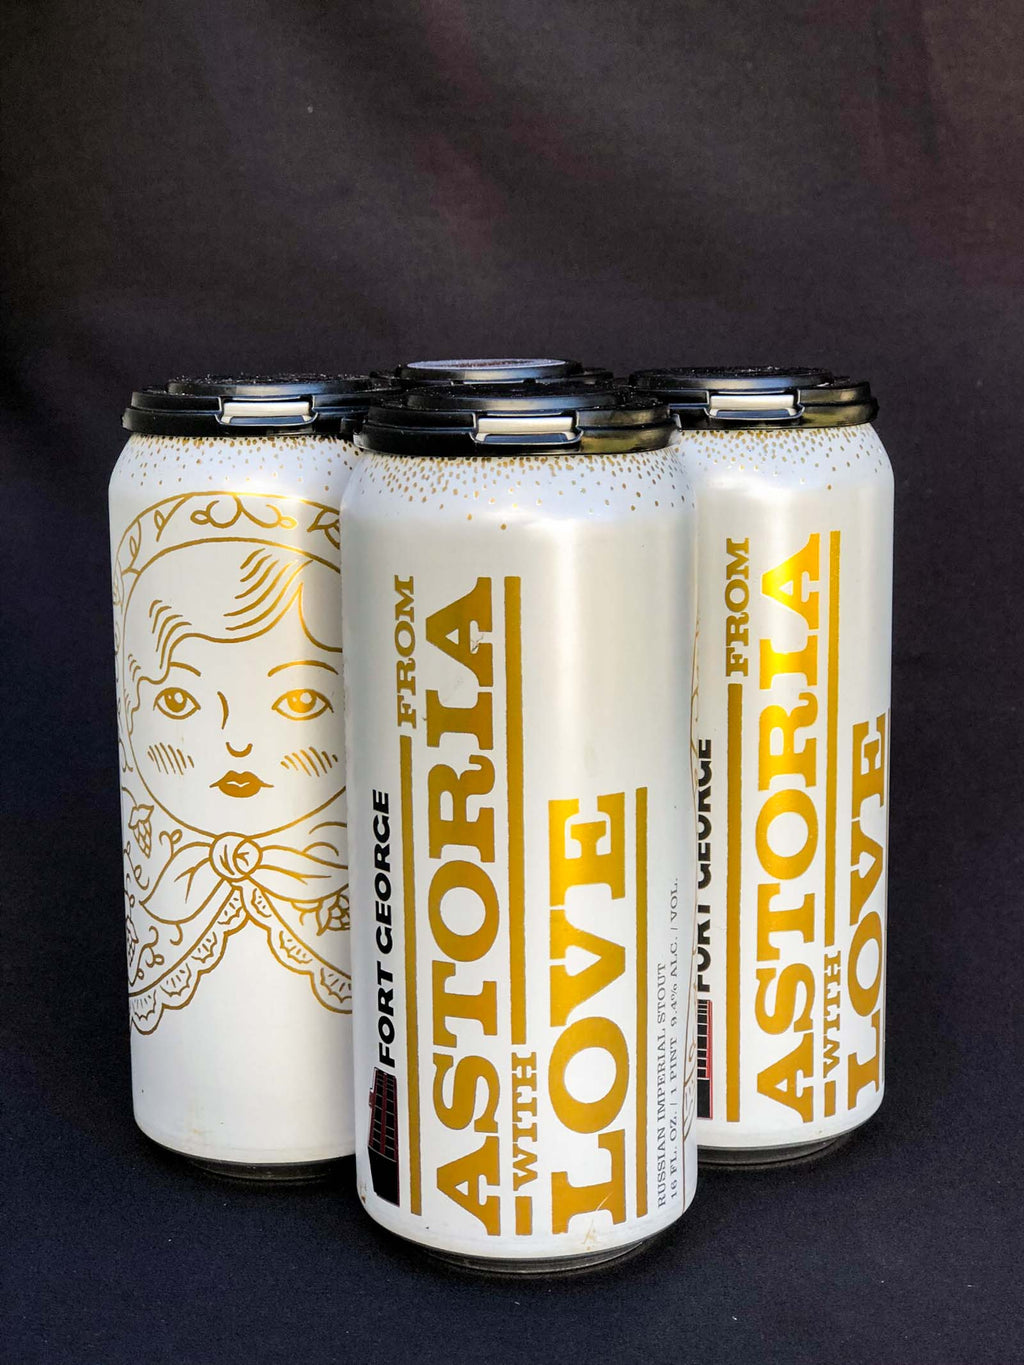 Buy Fort George From Astoria with Love Russian Imperial Stout Online